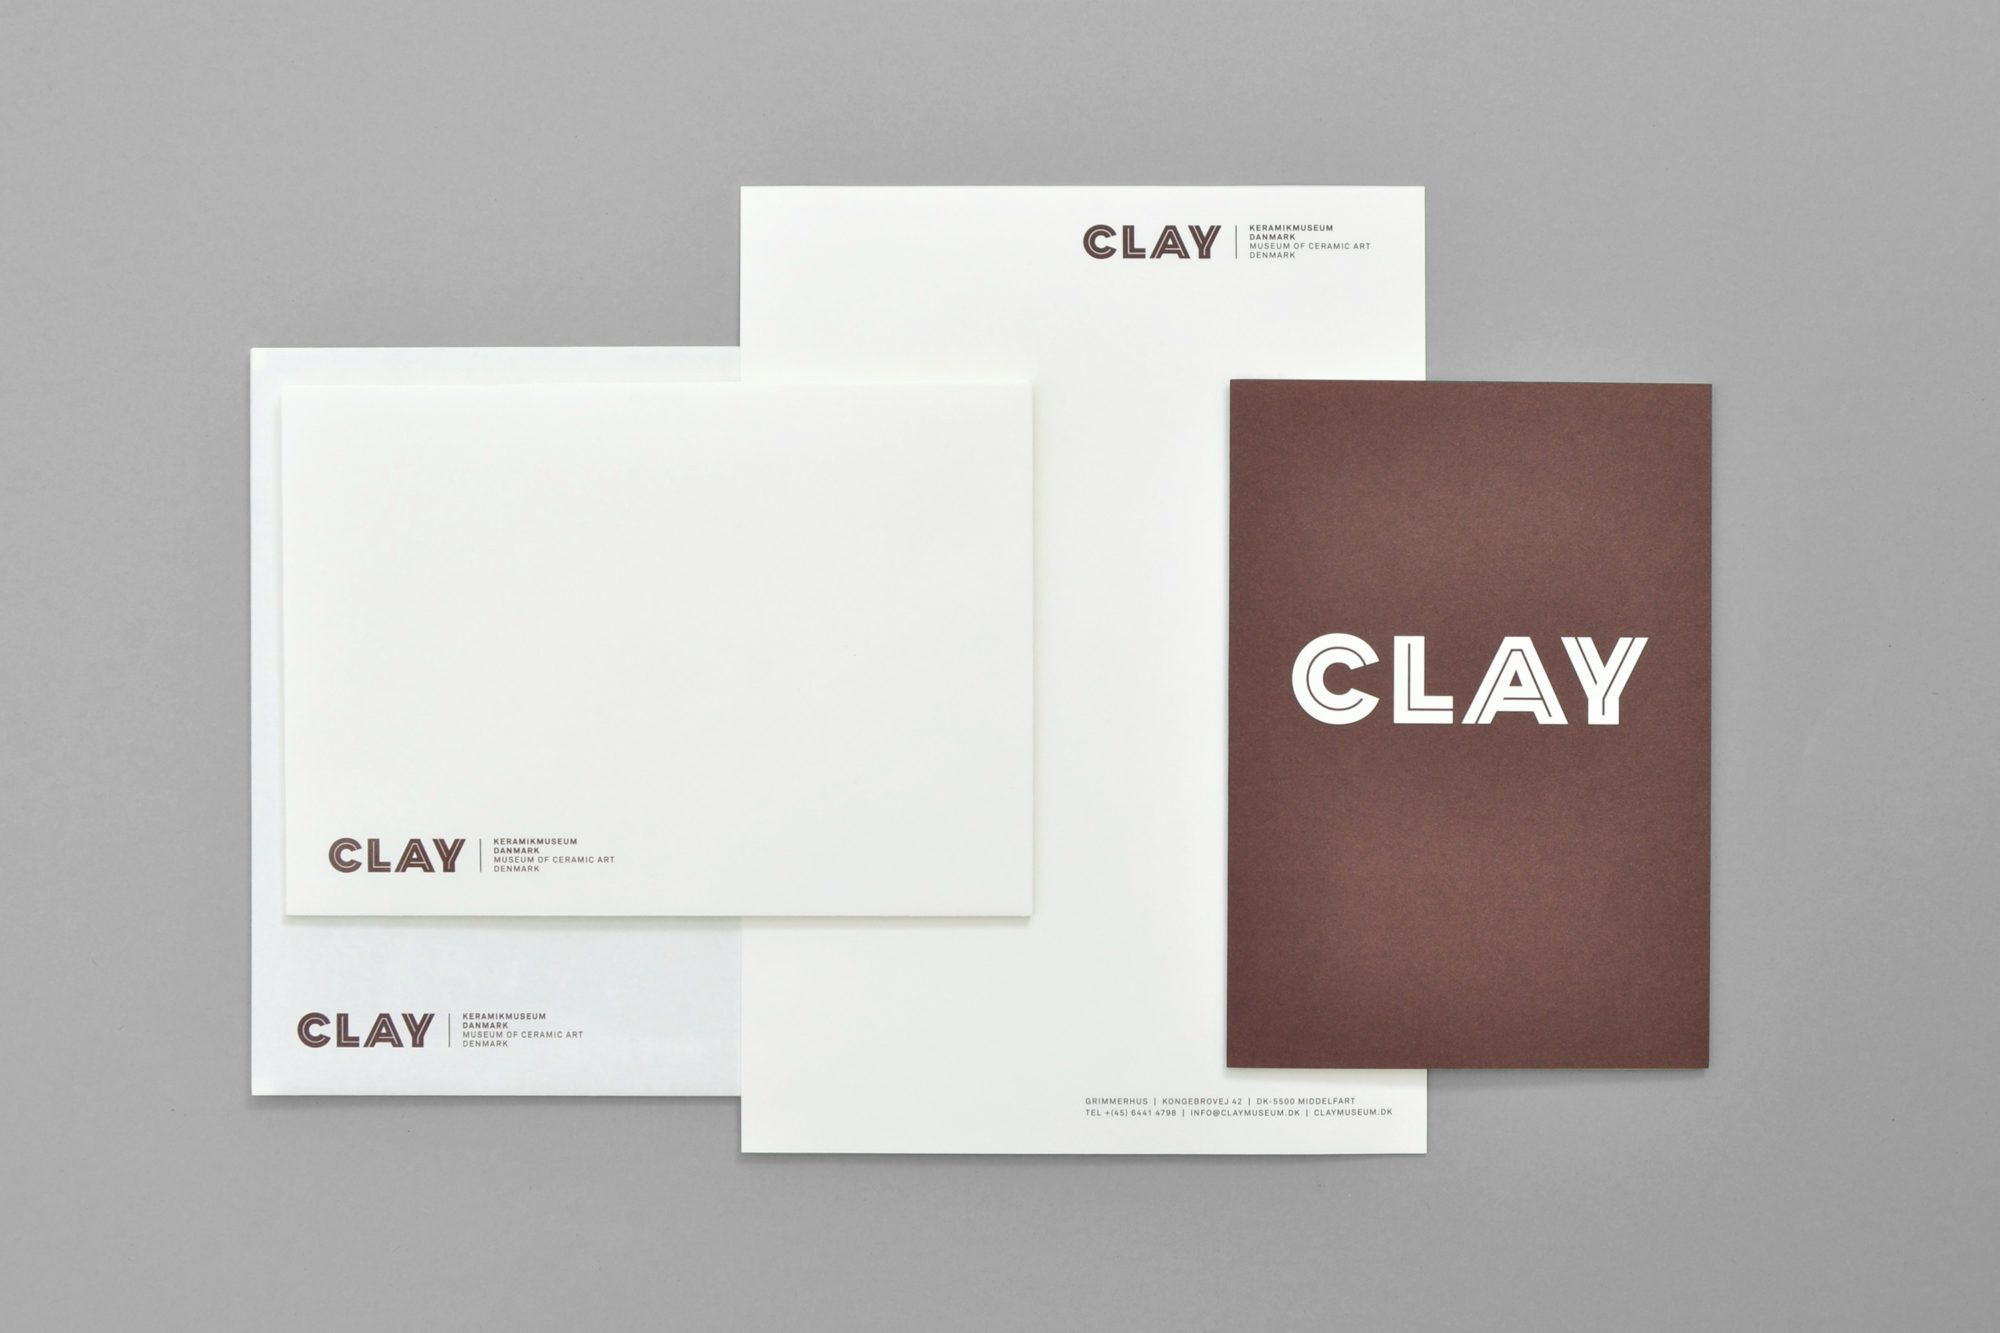 CLAY – Museum Of Ceramic Art Denmark Studio Claus Due Graphic